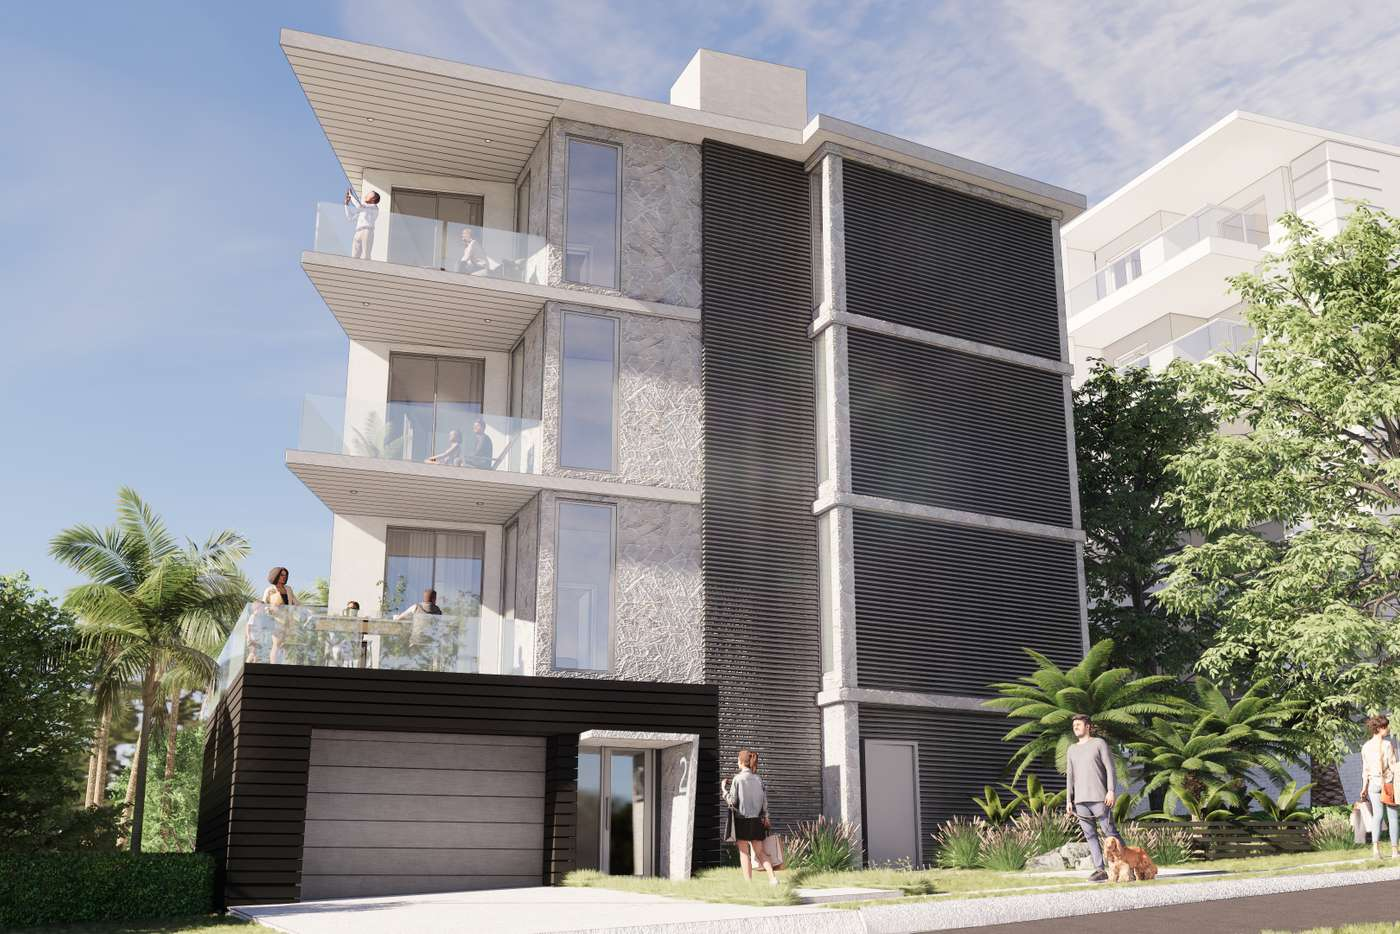 Main view of Homely house listing, 2 Kendall Street, Gosford NSW 2250